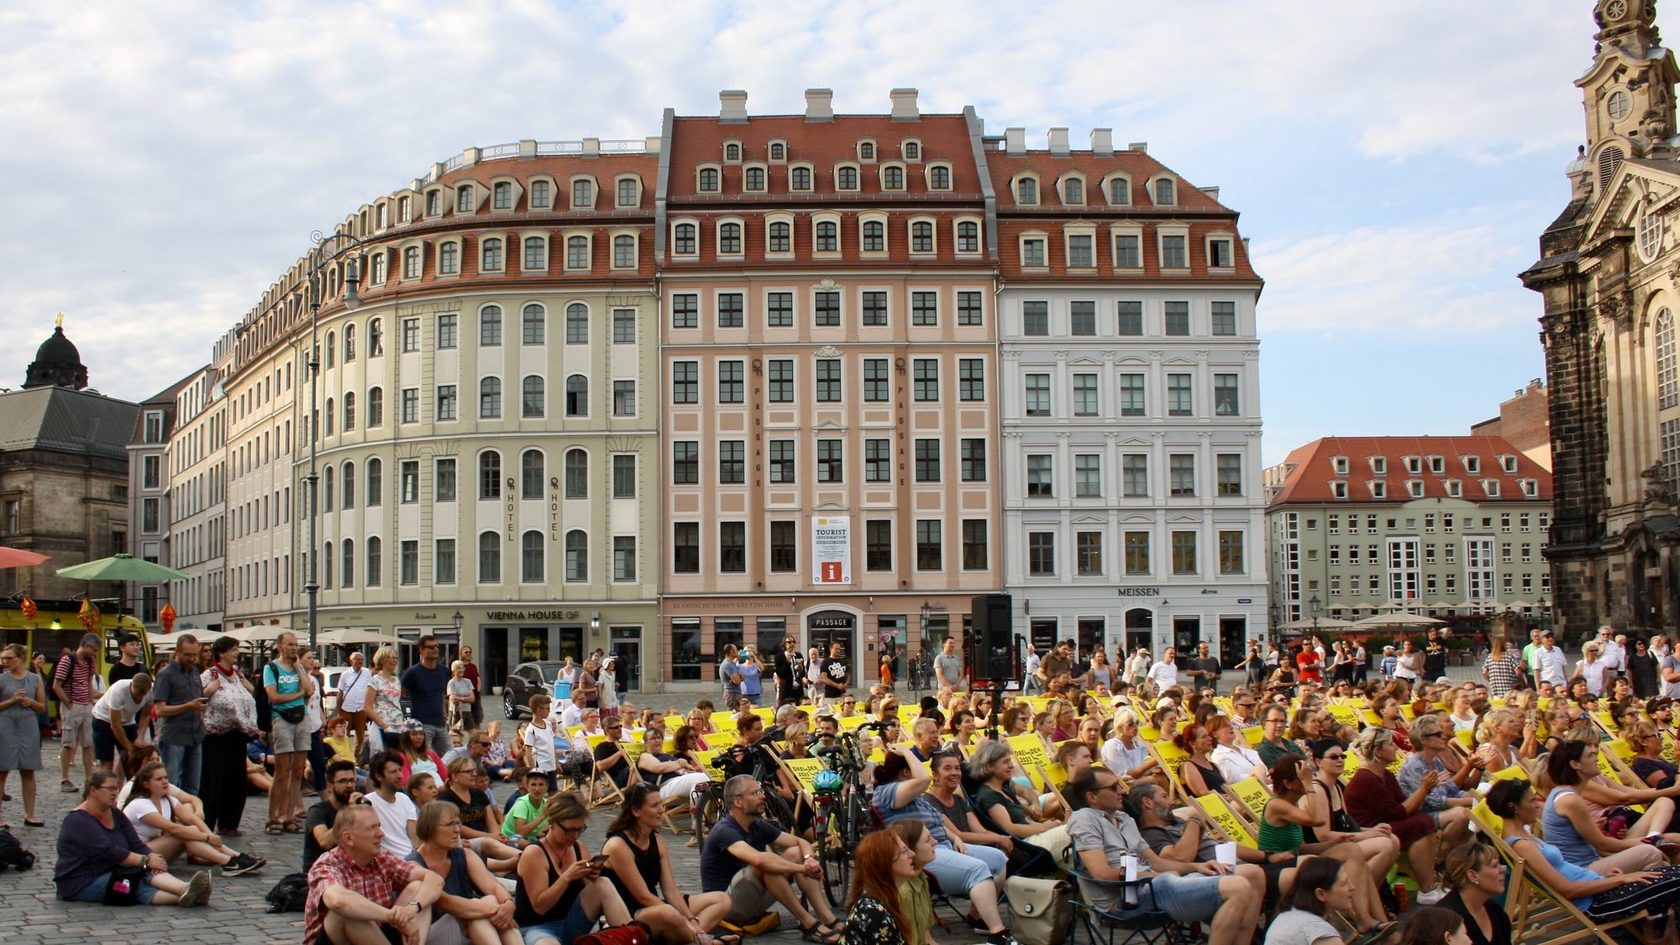 Numerous people are sitting in deck chairs on Dresden's Neumarkt square. In the background houses and a part of the Dresden Frauenkirche can be seen.